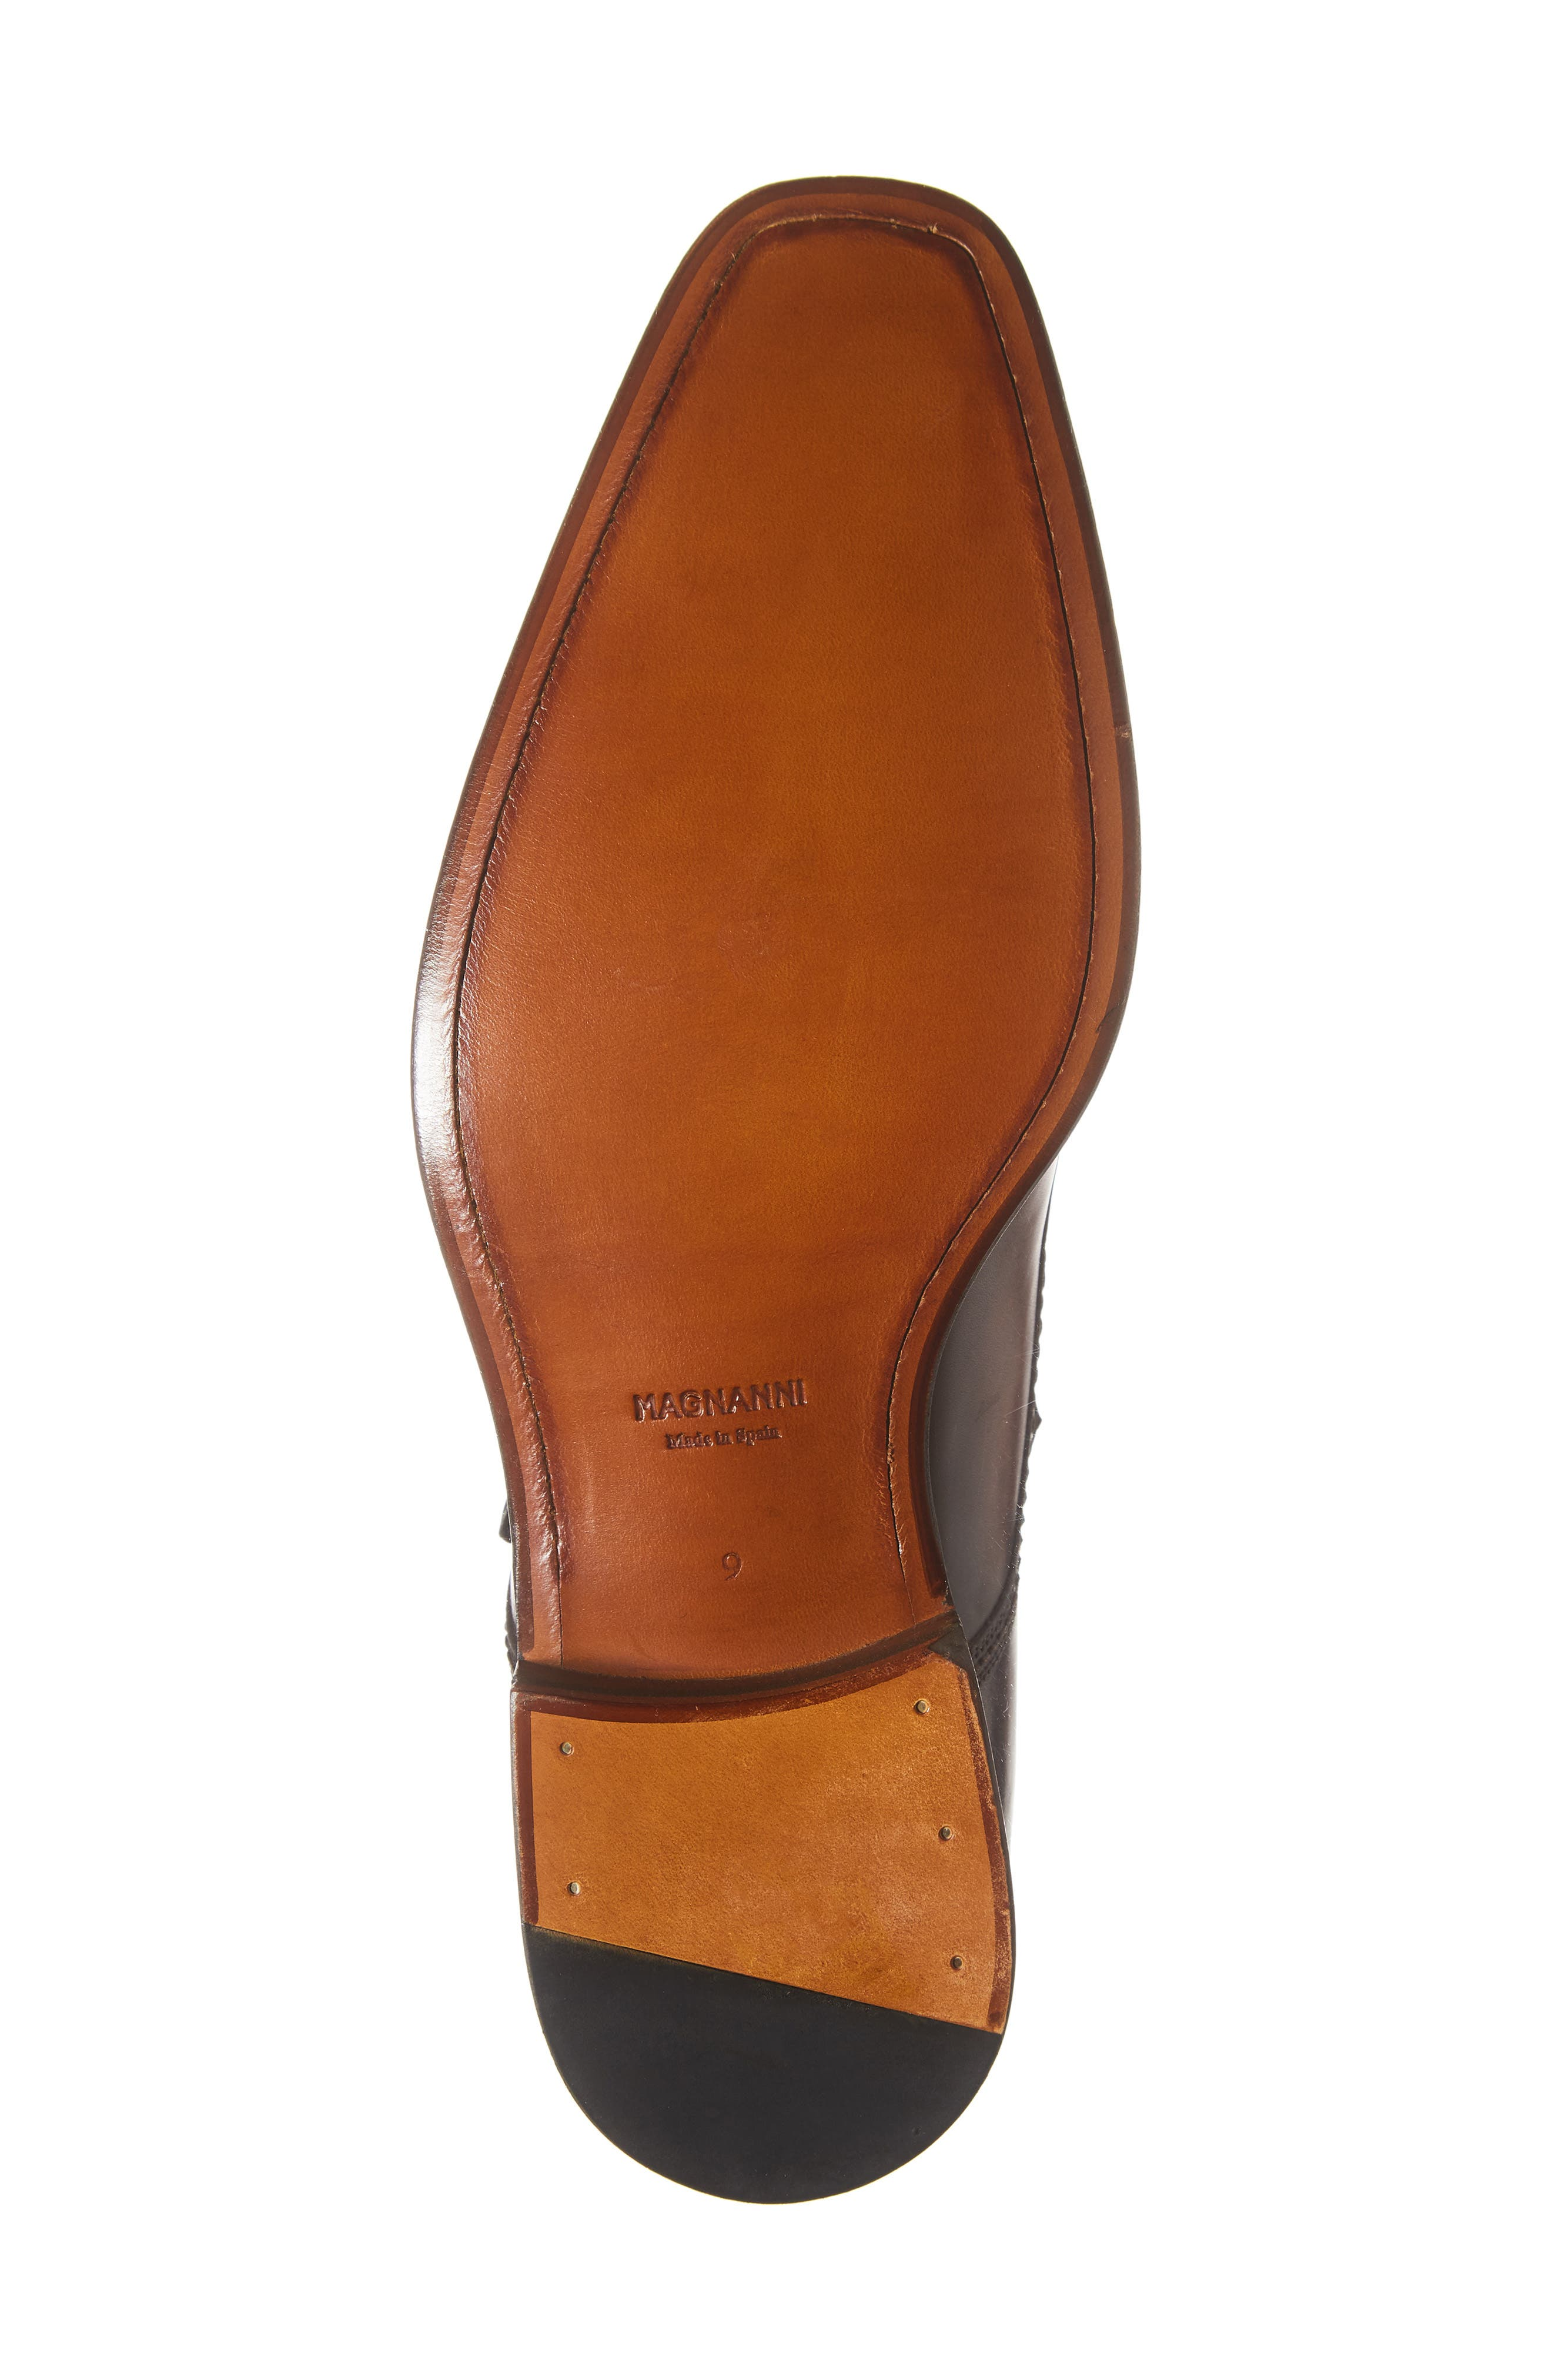 MAGNANNI,                             Luka Monk Strap Boot,                             Alternate thumbnail 6, color,                             MID BROWN LEATHER